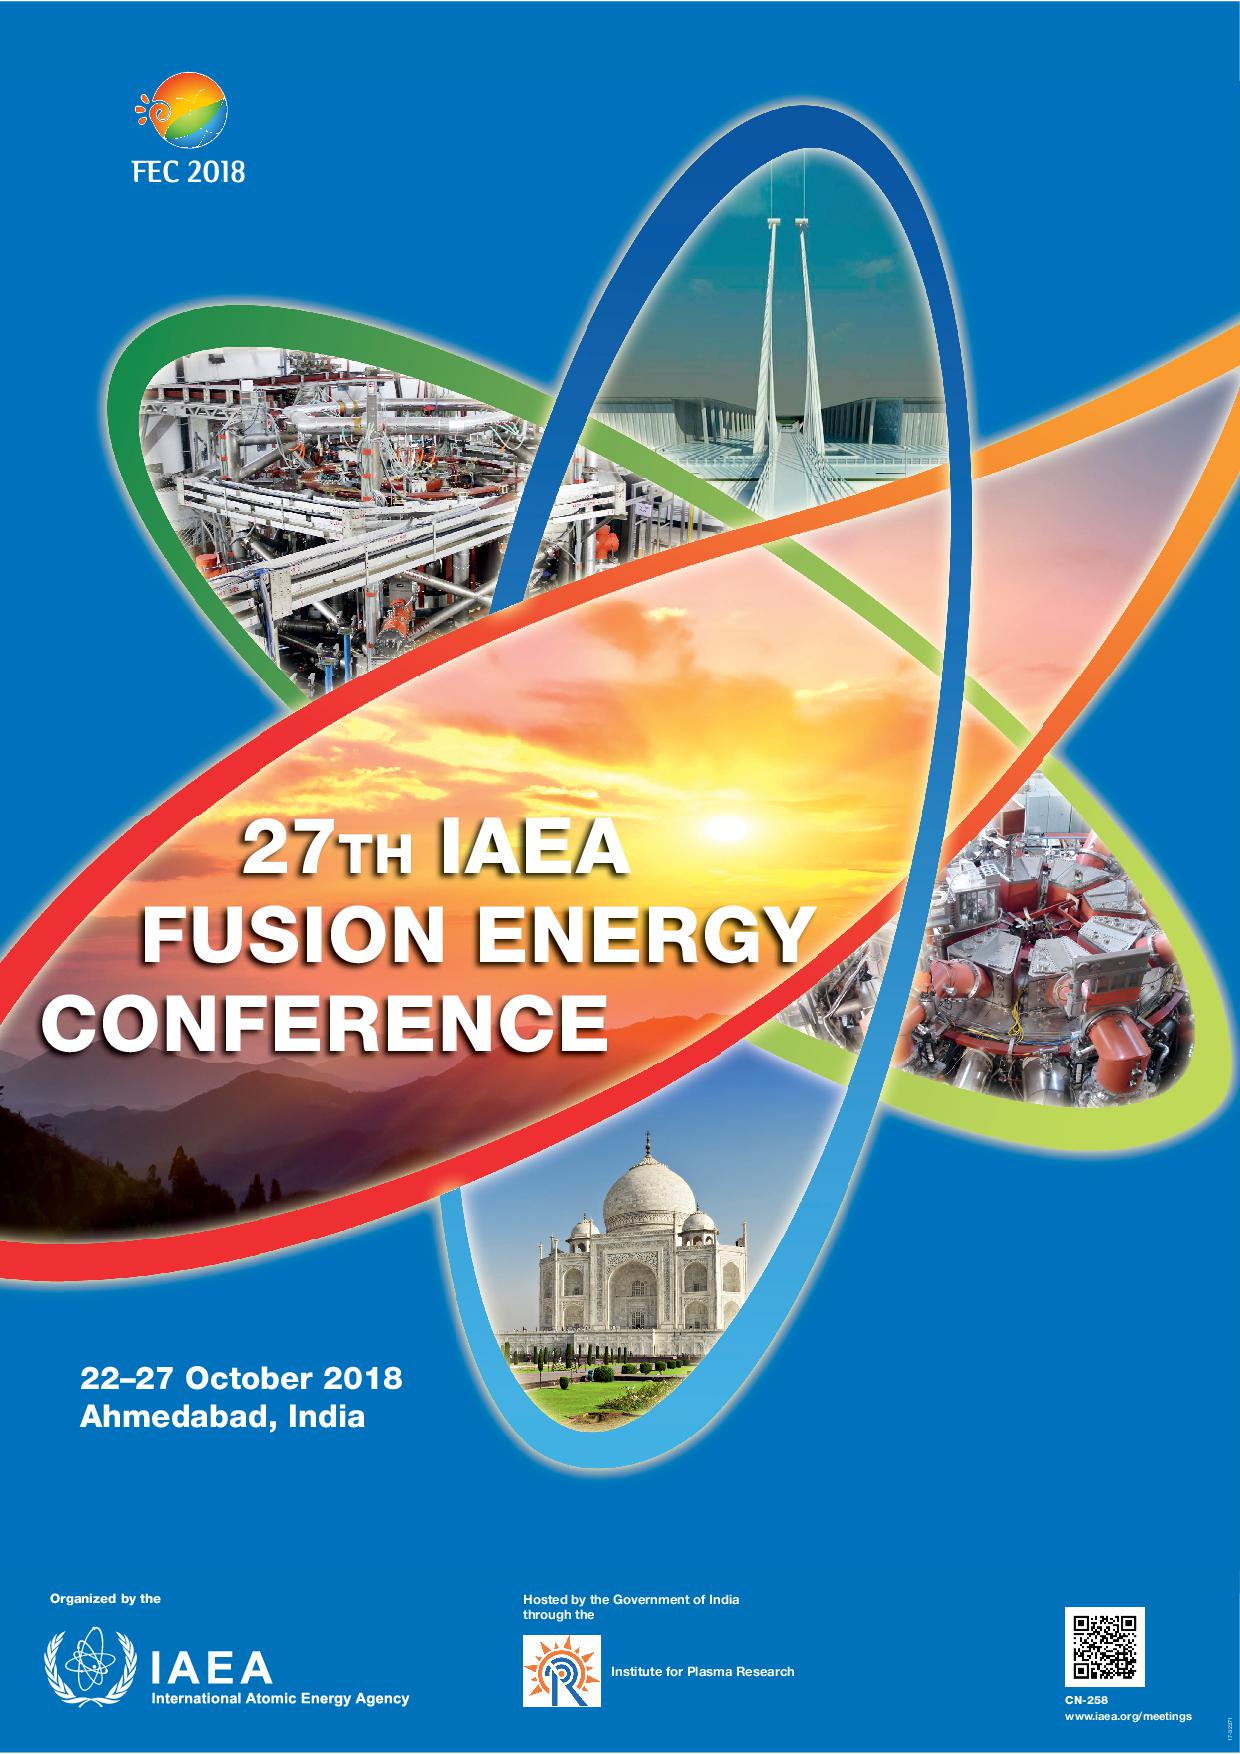 27th Iaea Fusion Energy Conference Cn 258 22 27 October 2018 Shortcircuit Testing At Hundreds Of Kilovolts Using Ni Pxi Held In Salzburg 1961 Culham 1965 Novosibirsk 1968 Madison 1971 Tokyo 1974 Berchtesgaden 1976 Innsbruck 1978 Brussels 1980